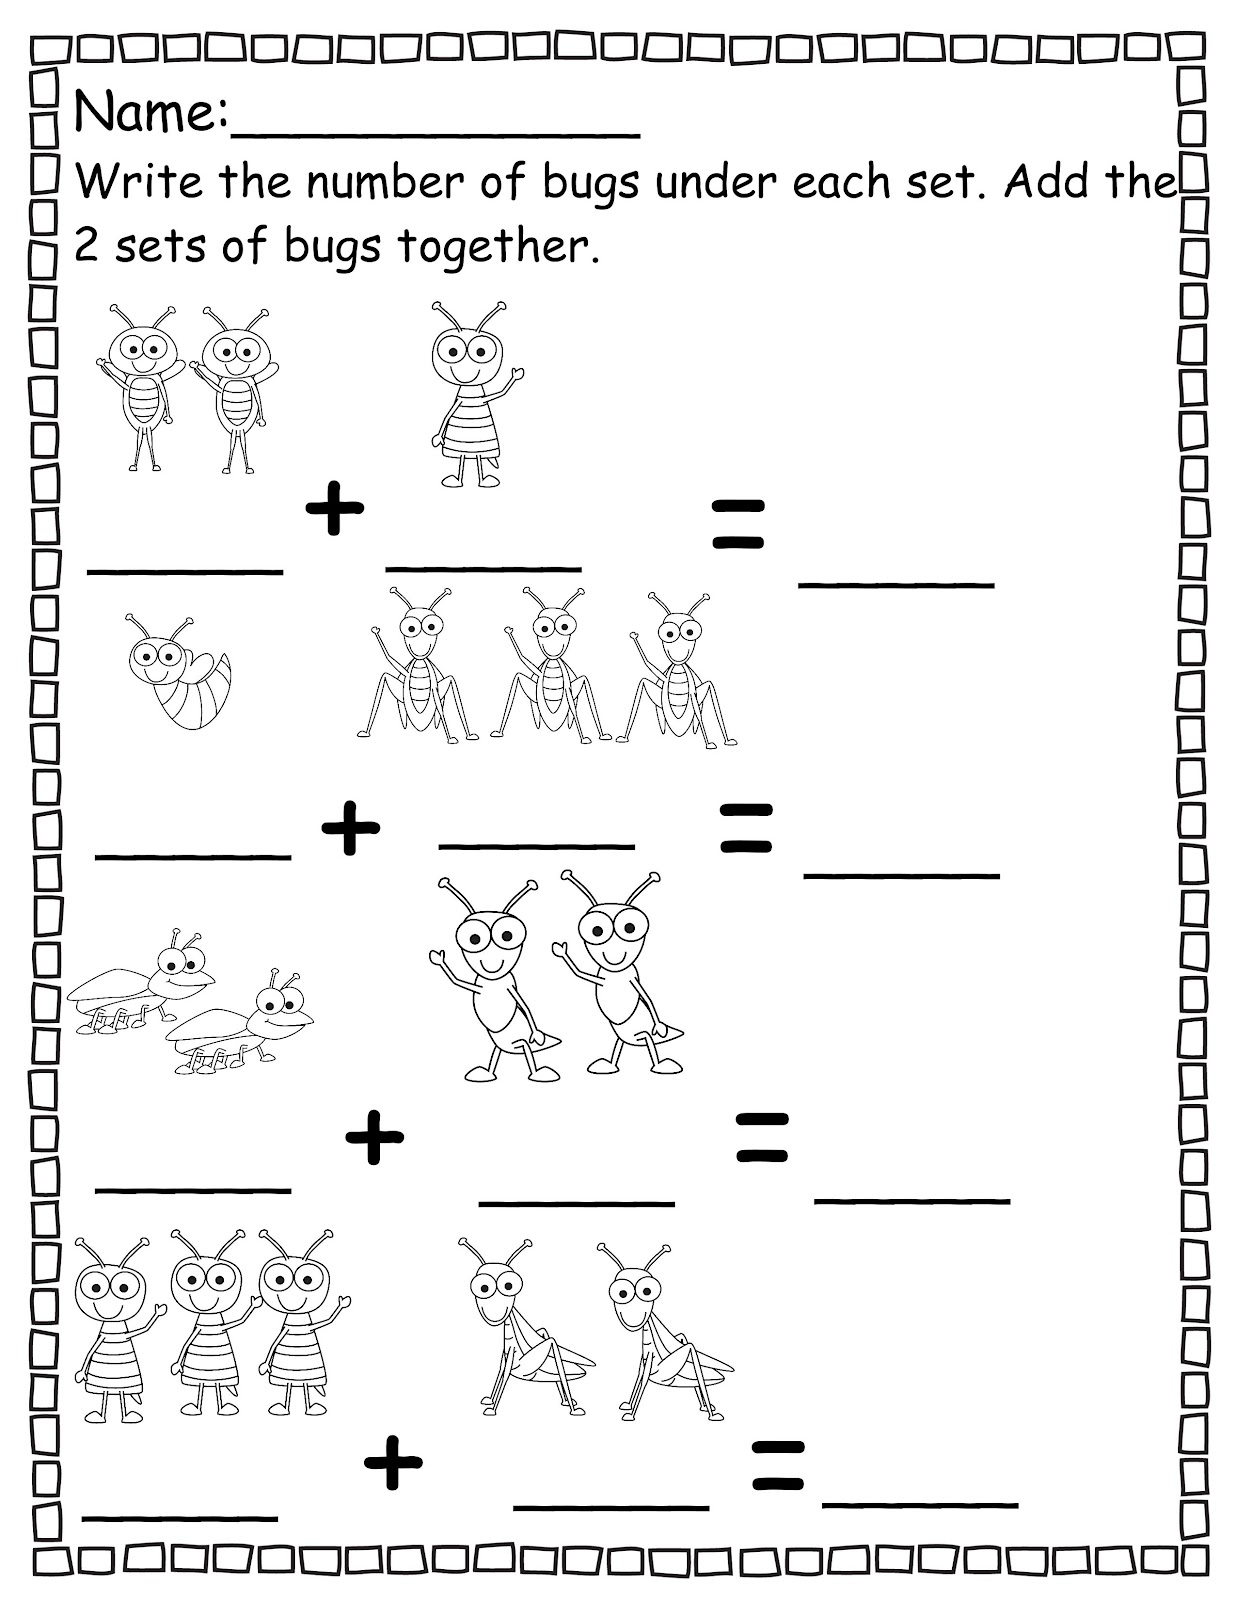 Free worksheets for pre k | actualidadeducativa.com